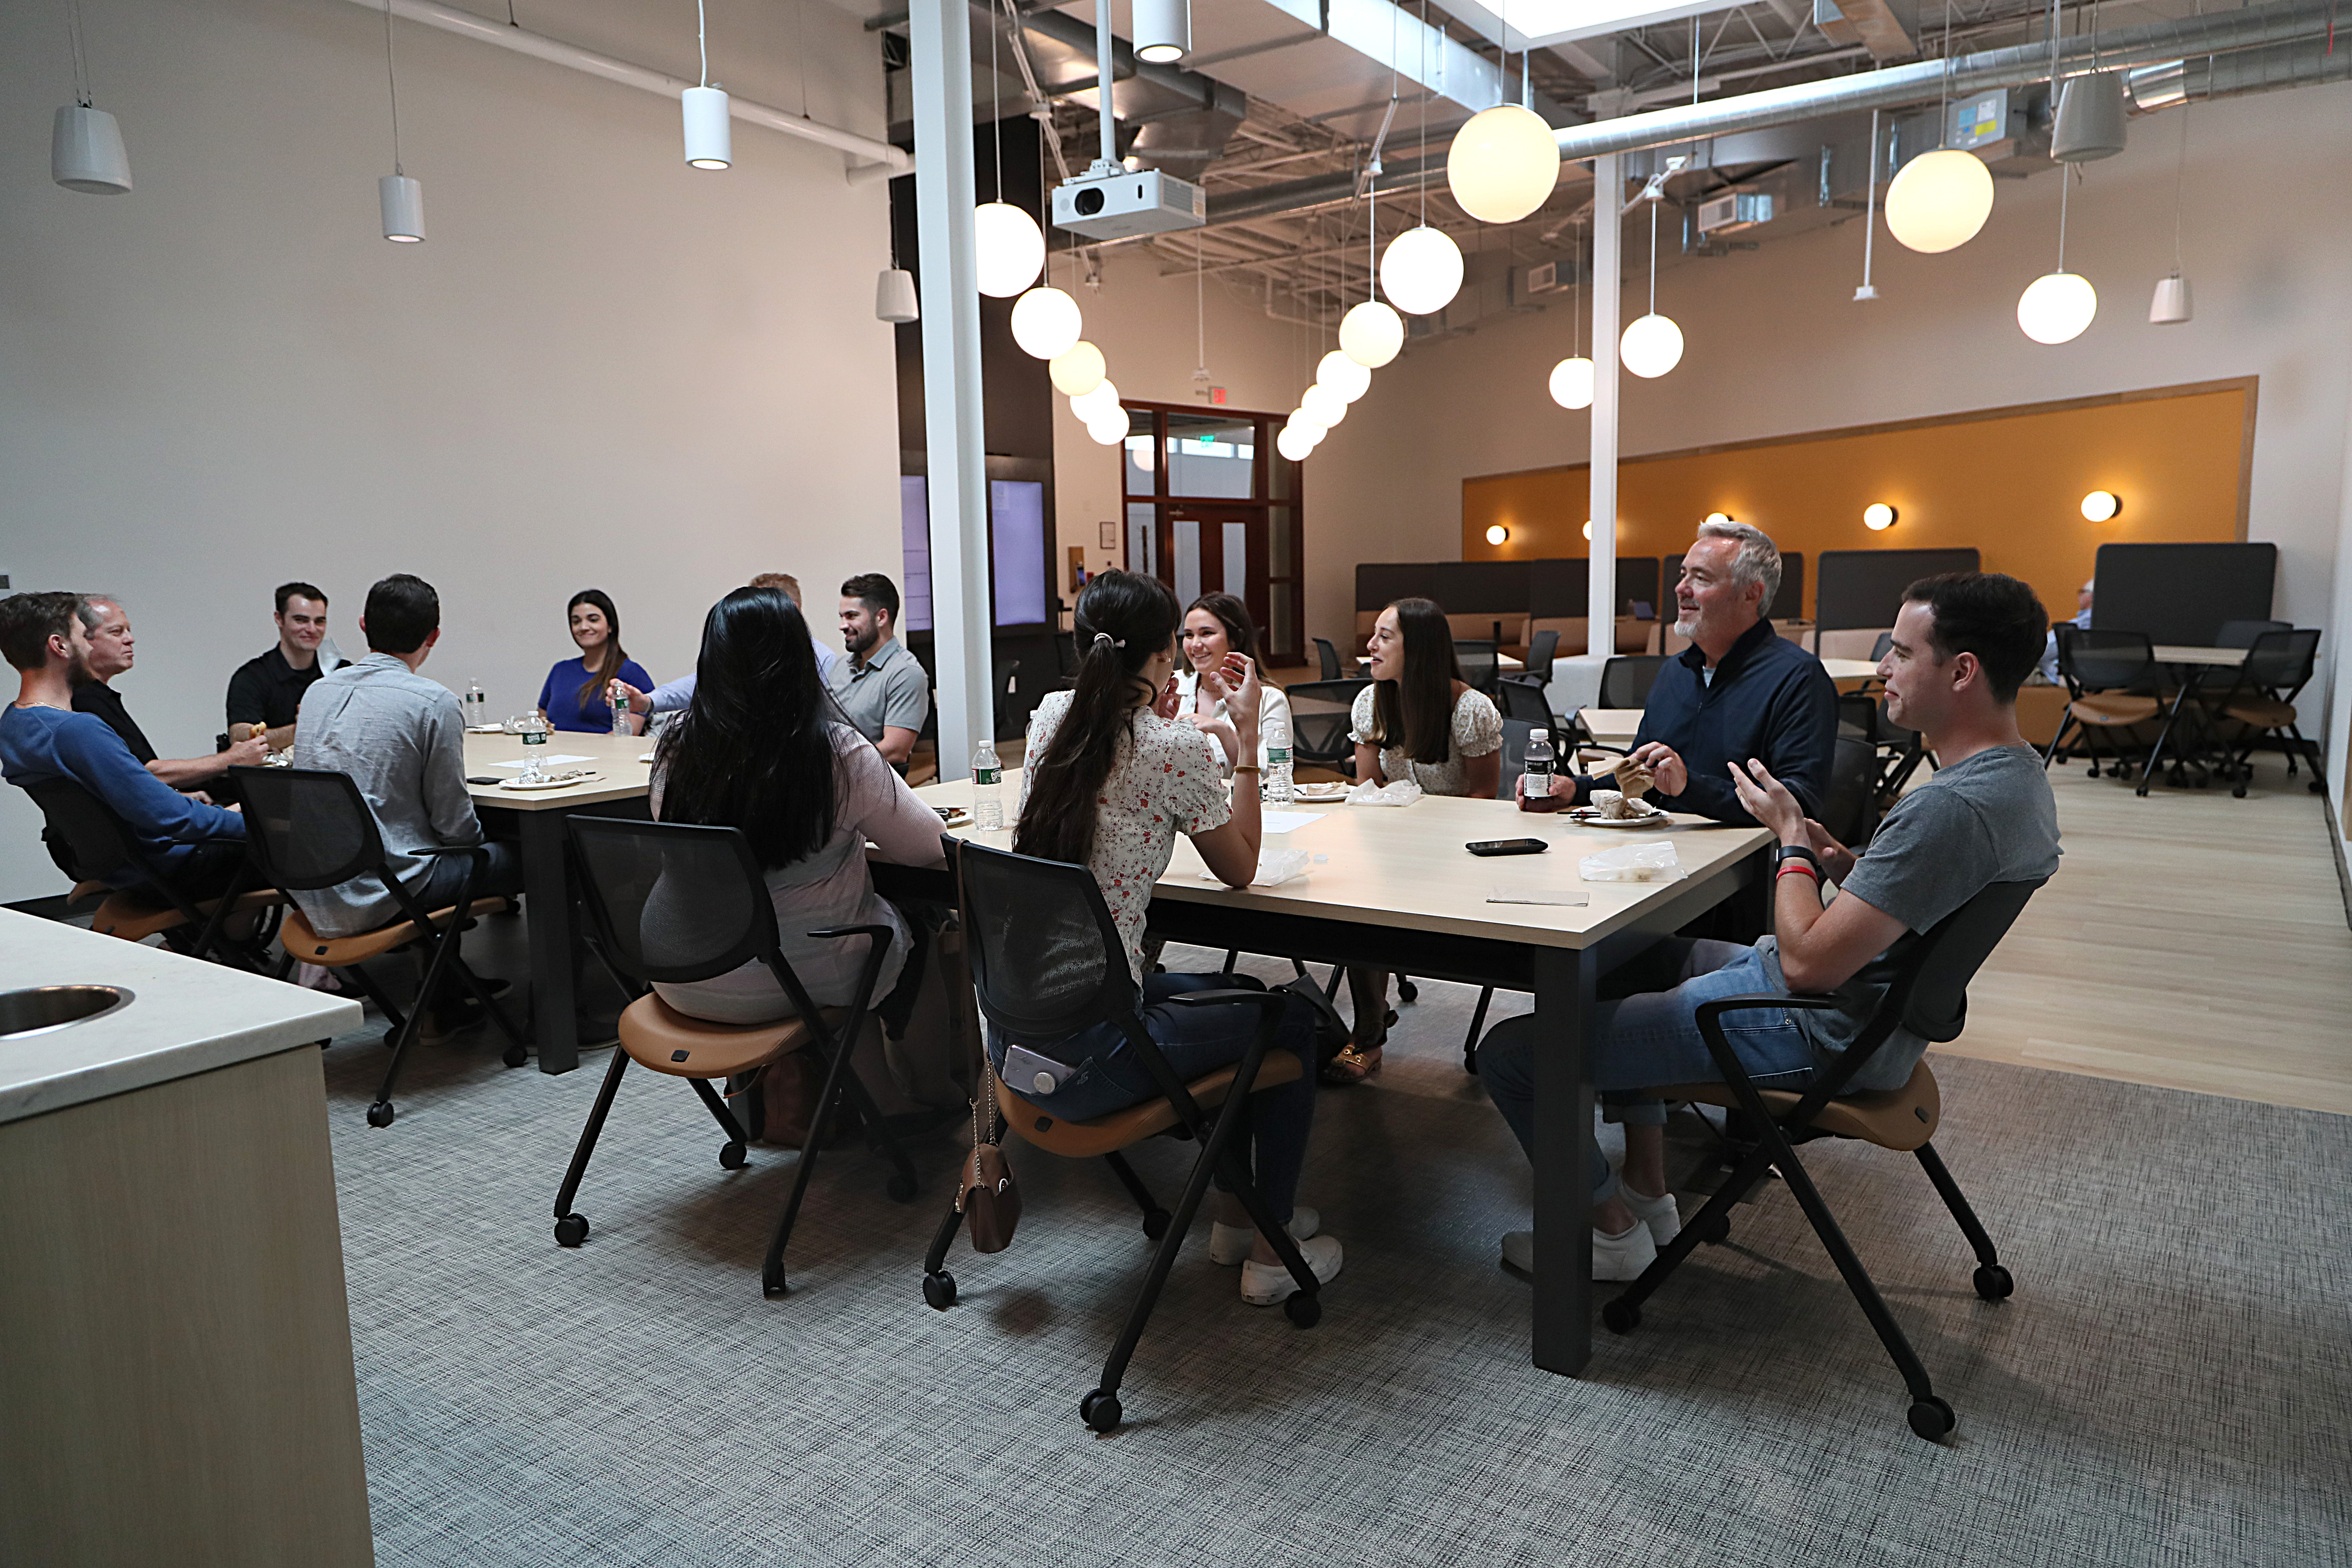 At the WorkBar in Needham, employees of a company meet in the kitchen.